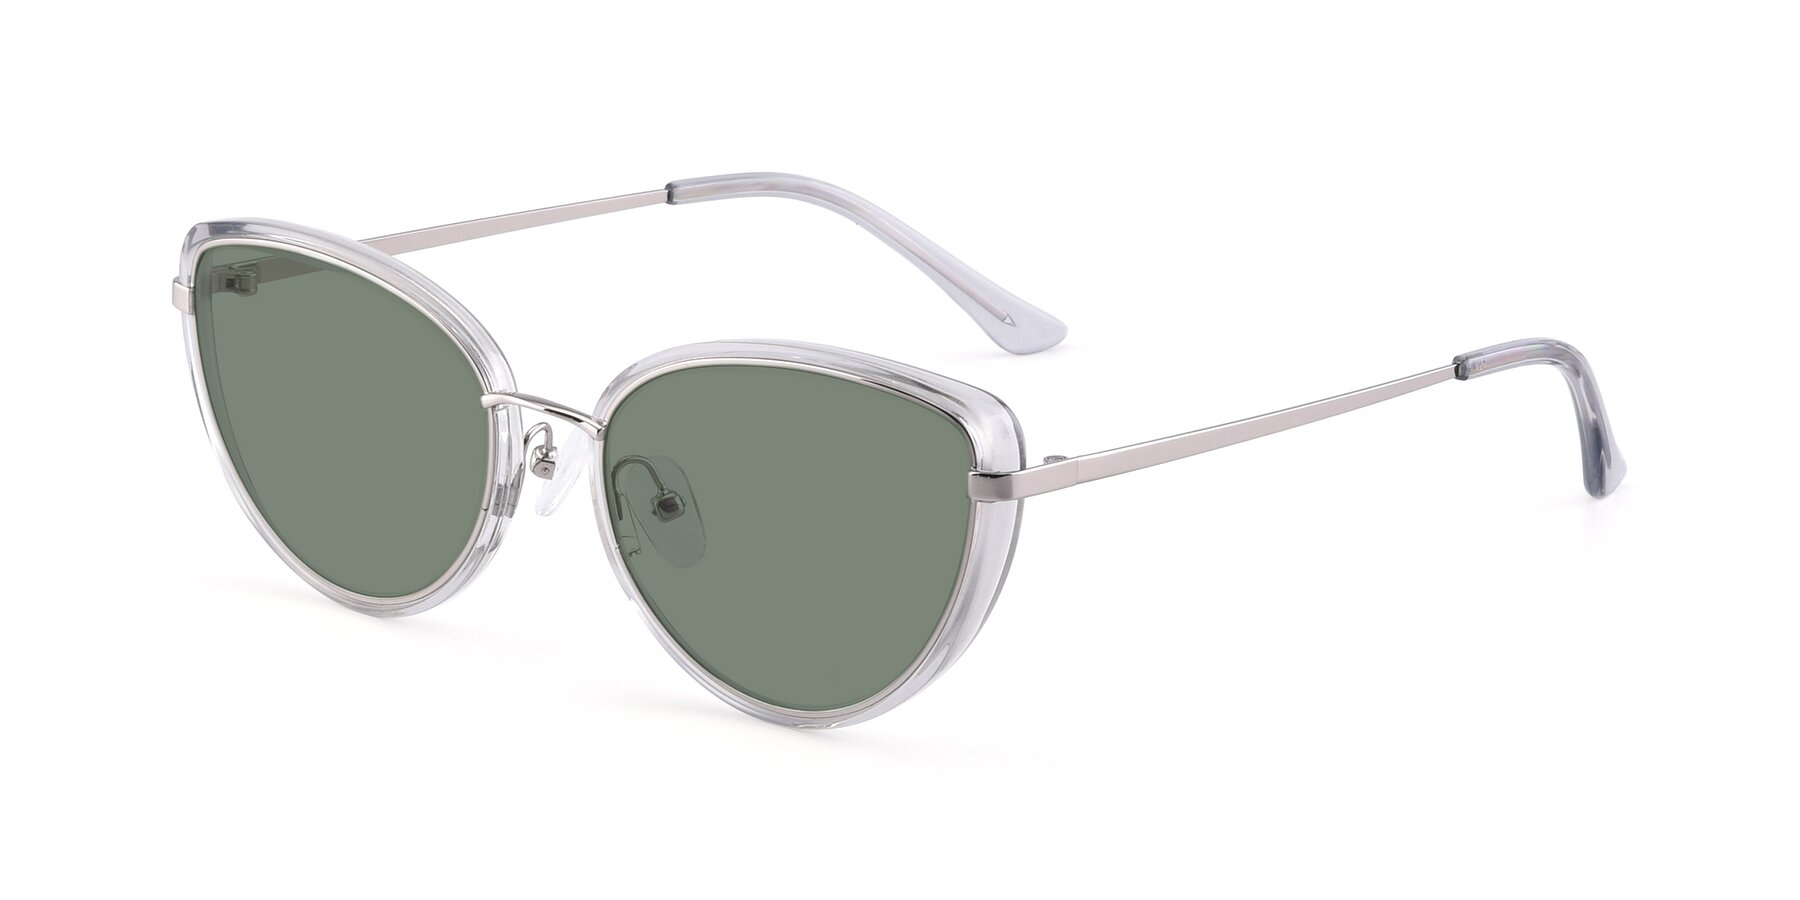 Angle of 17706 in Transparent Grey-Silver with Medium Green Tinted Lenses